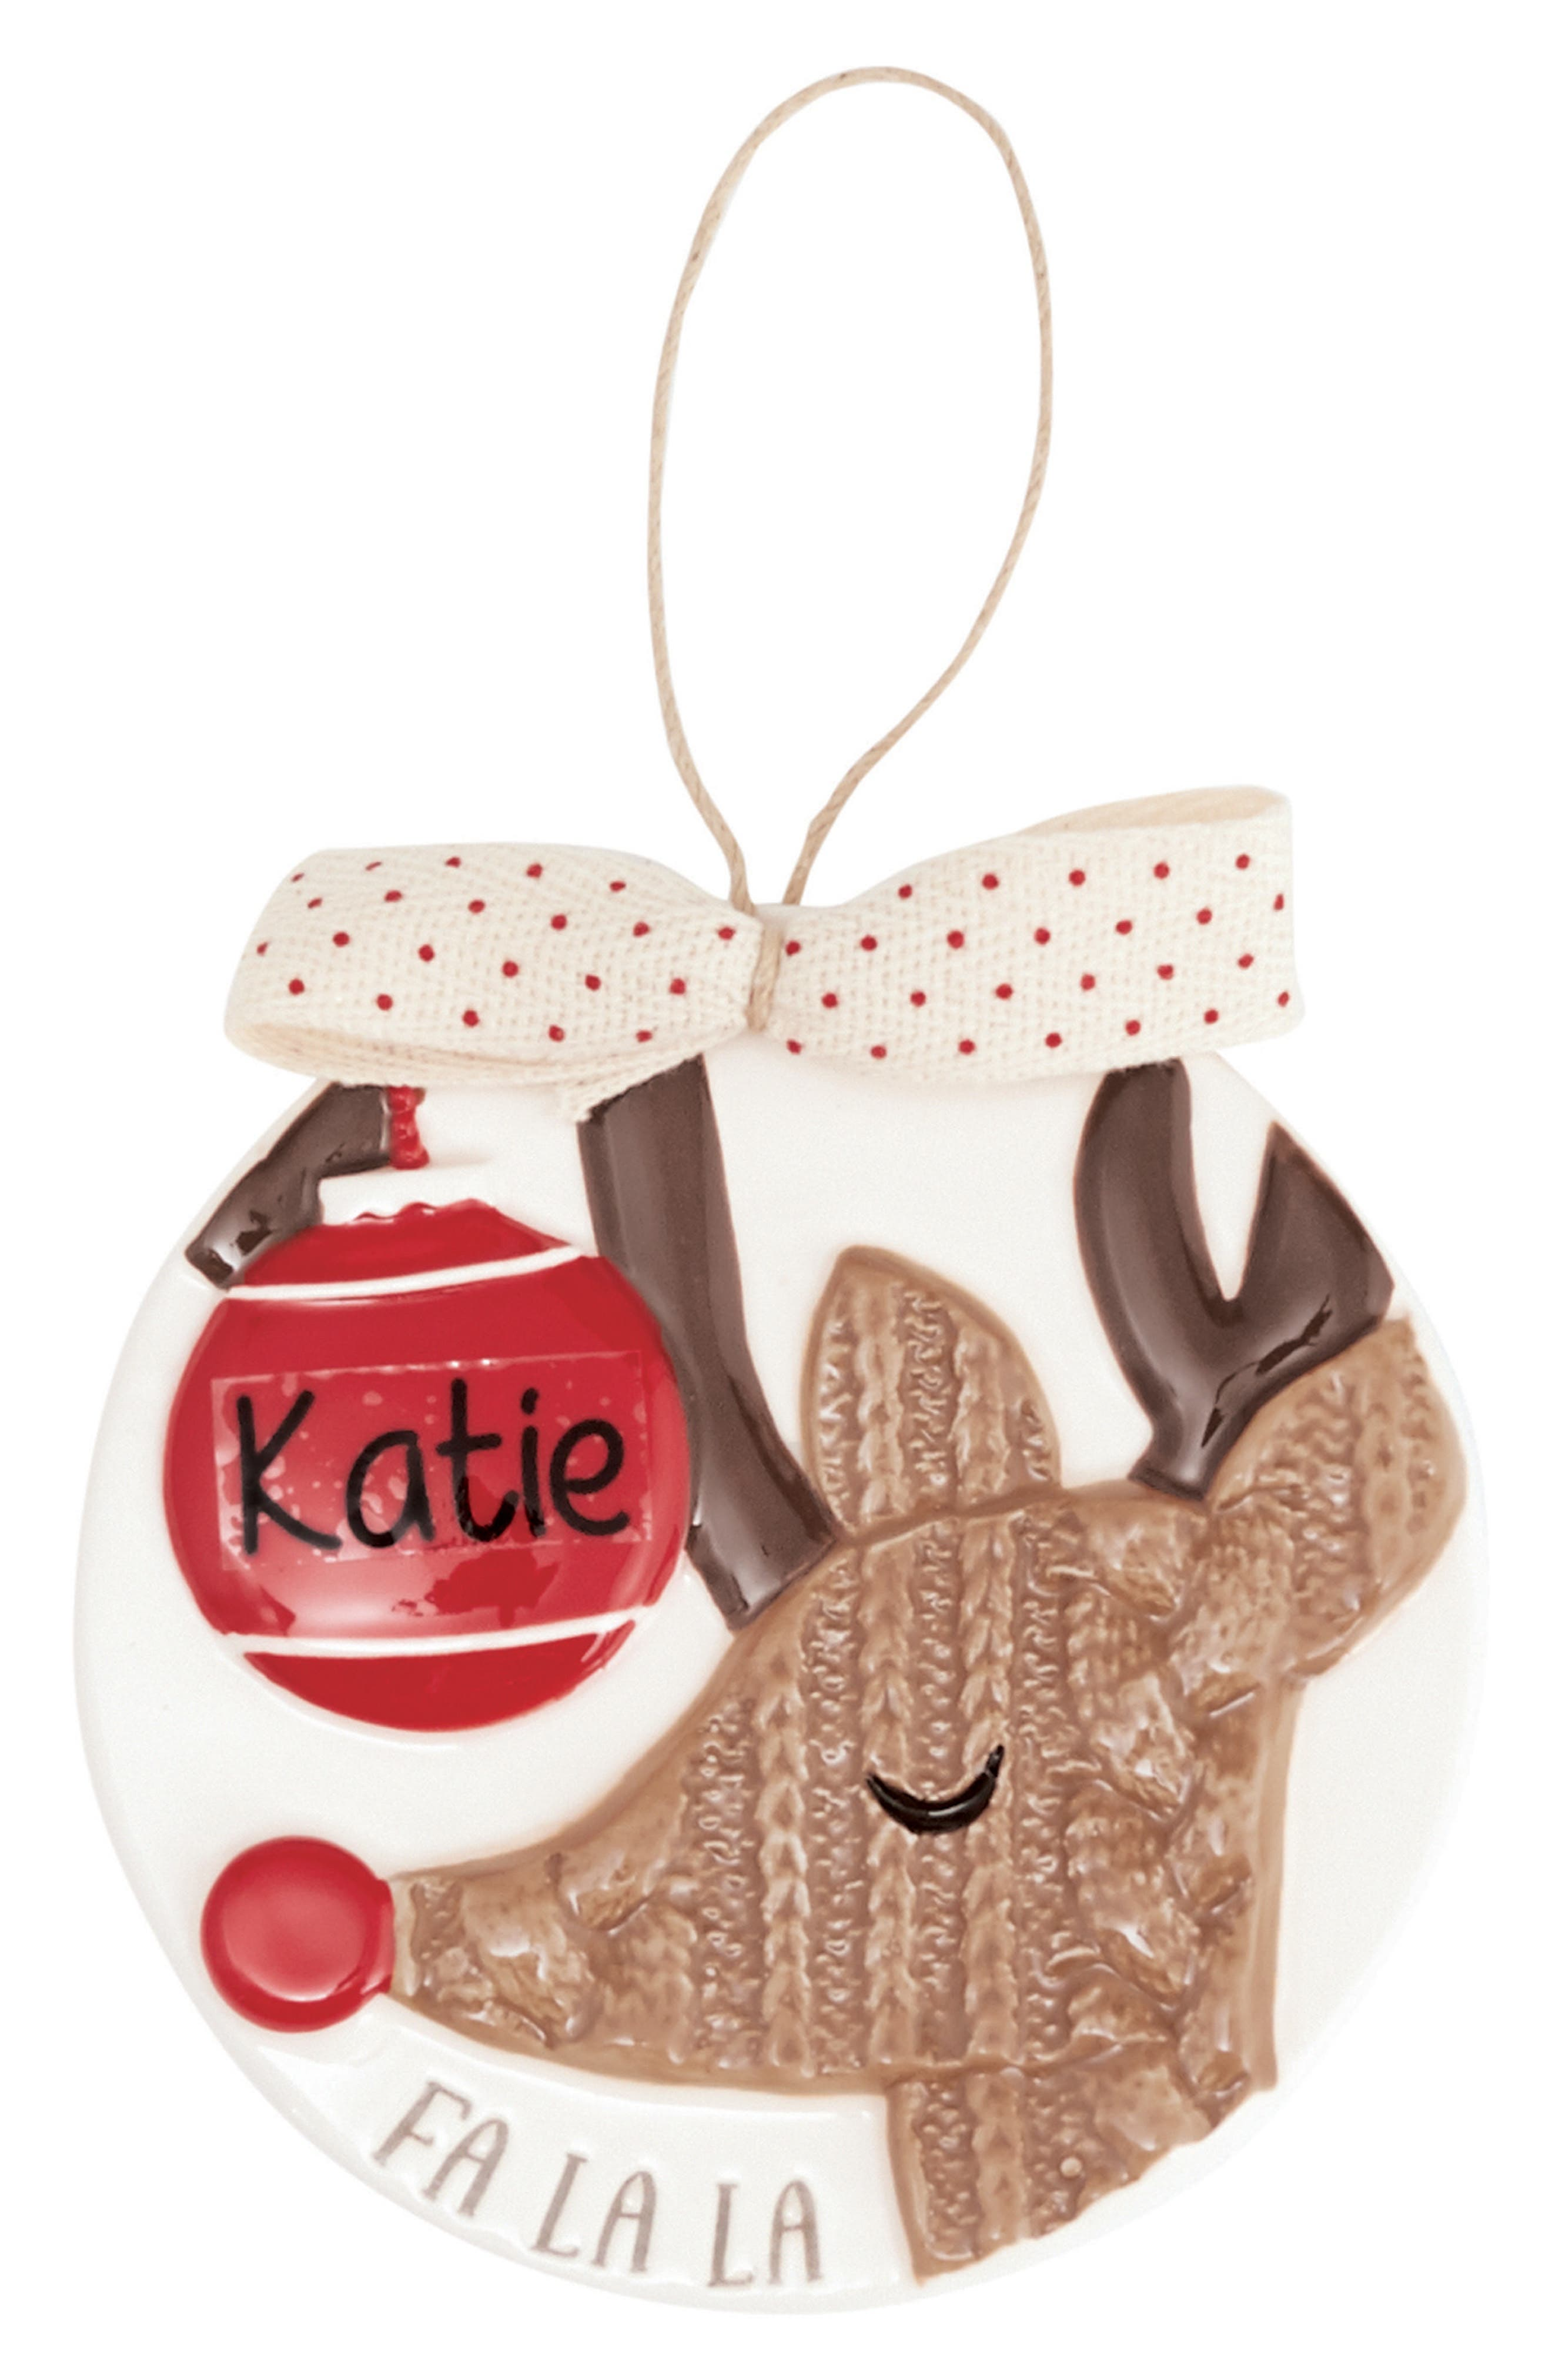 Reindeer Ornament with Personalization Sticker,                         Main,                         color, White/ Red